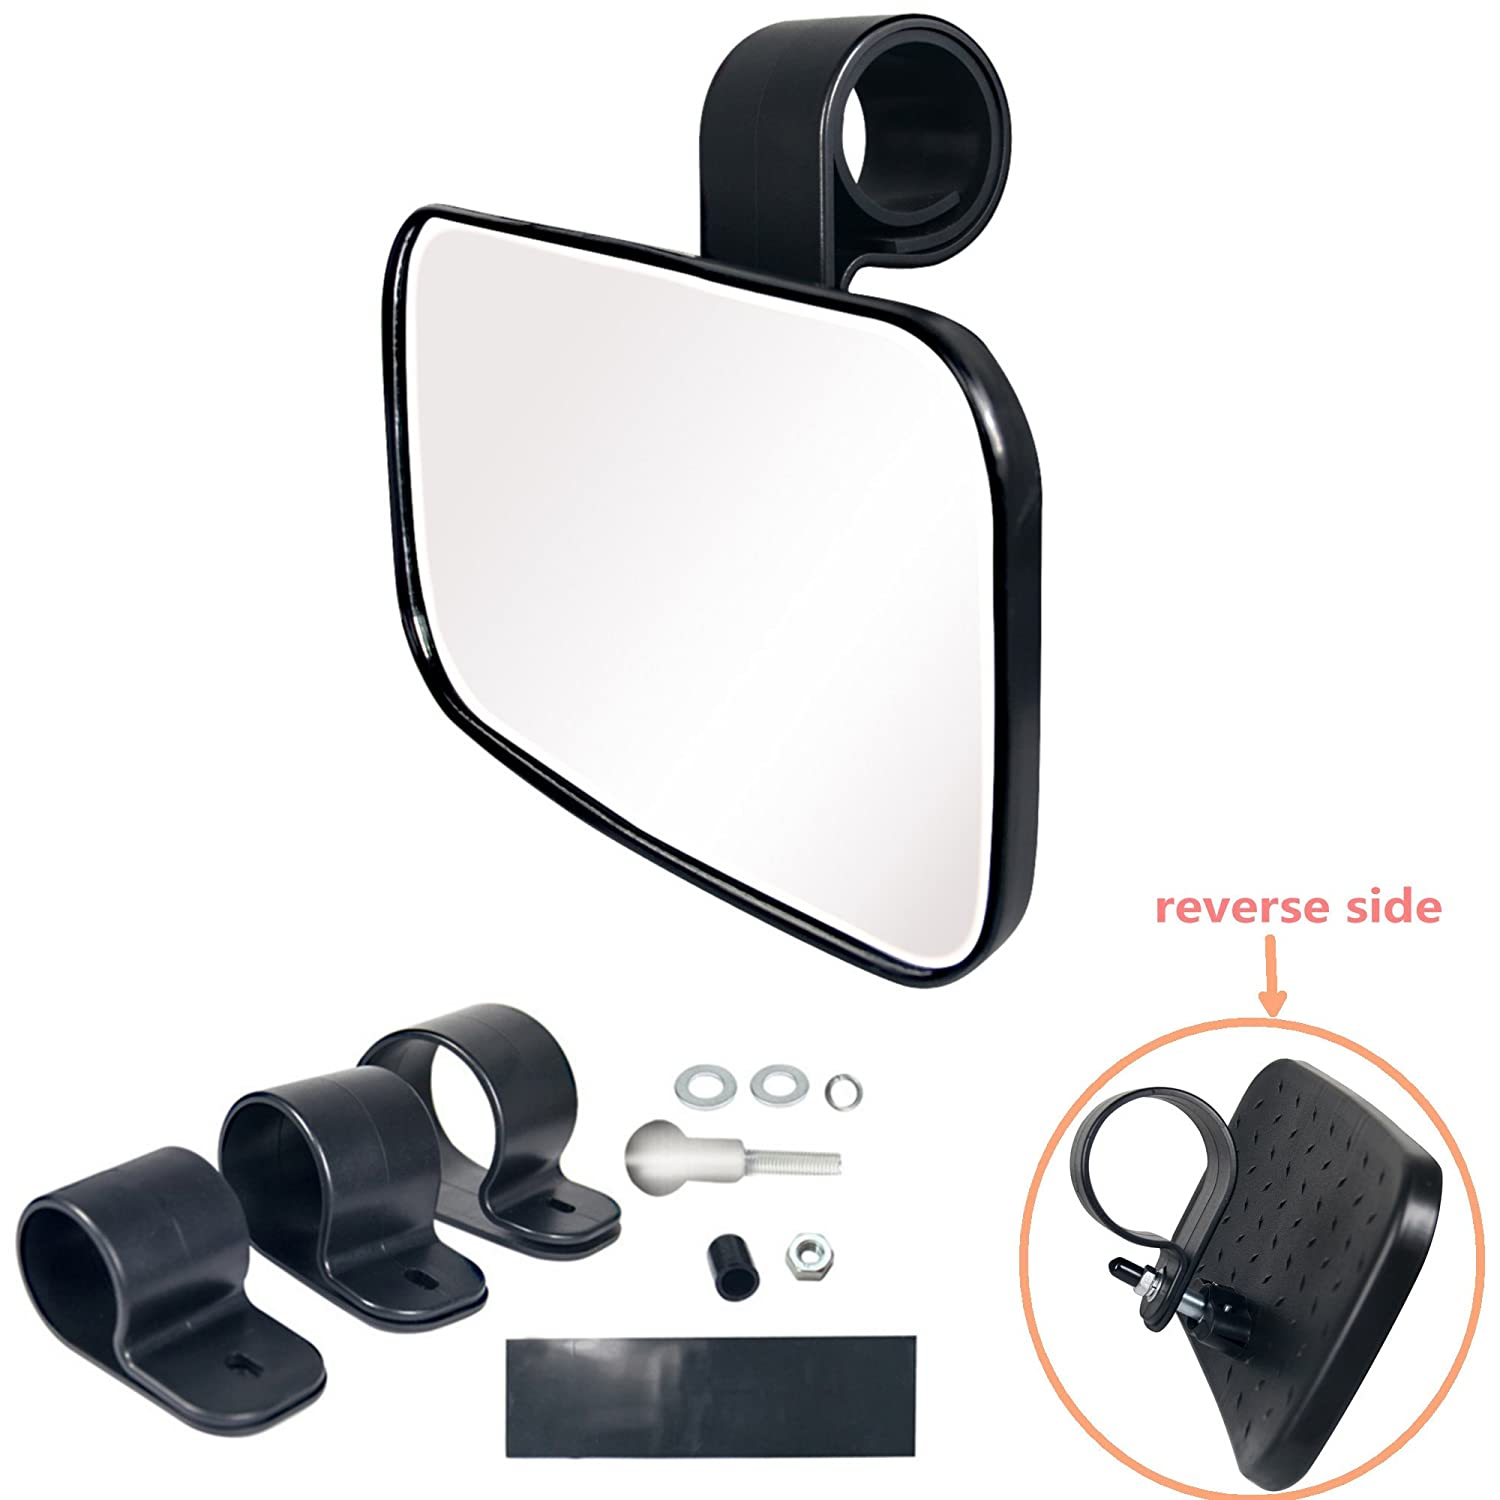 Bestong 1 Pcs UTV Clear Rear View Center Mirror High Impact ABS Housing and Multi Clamps with Shatter-Proof Tempered Glass Mirror Tongbest